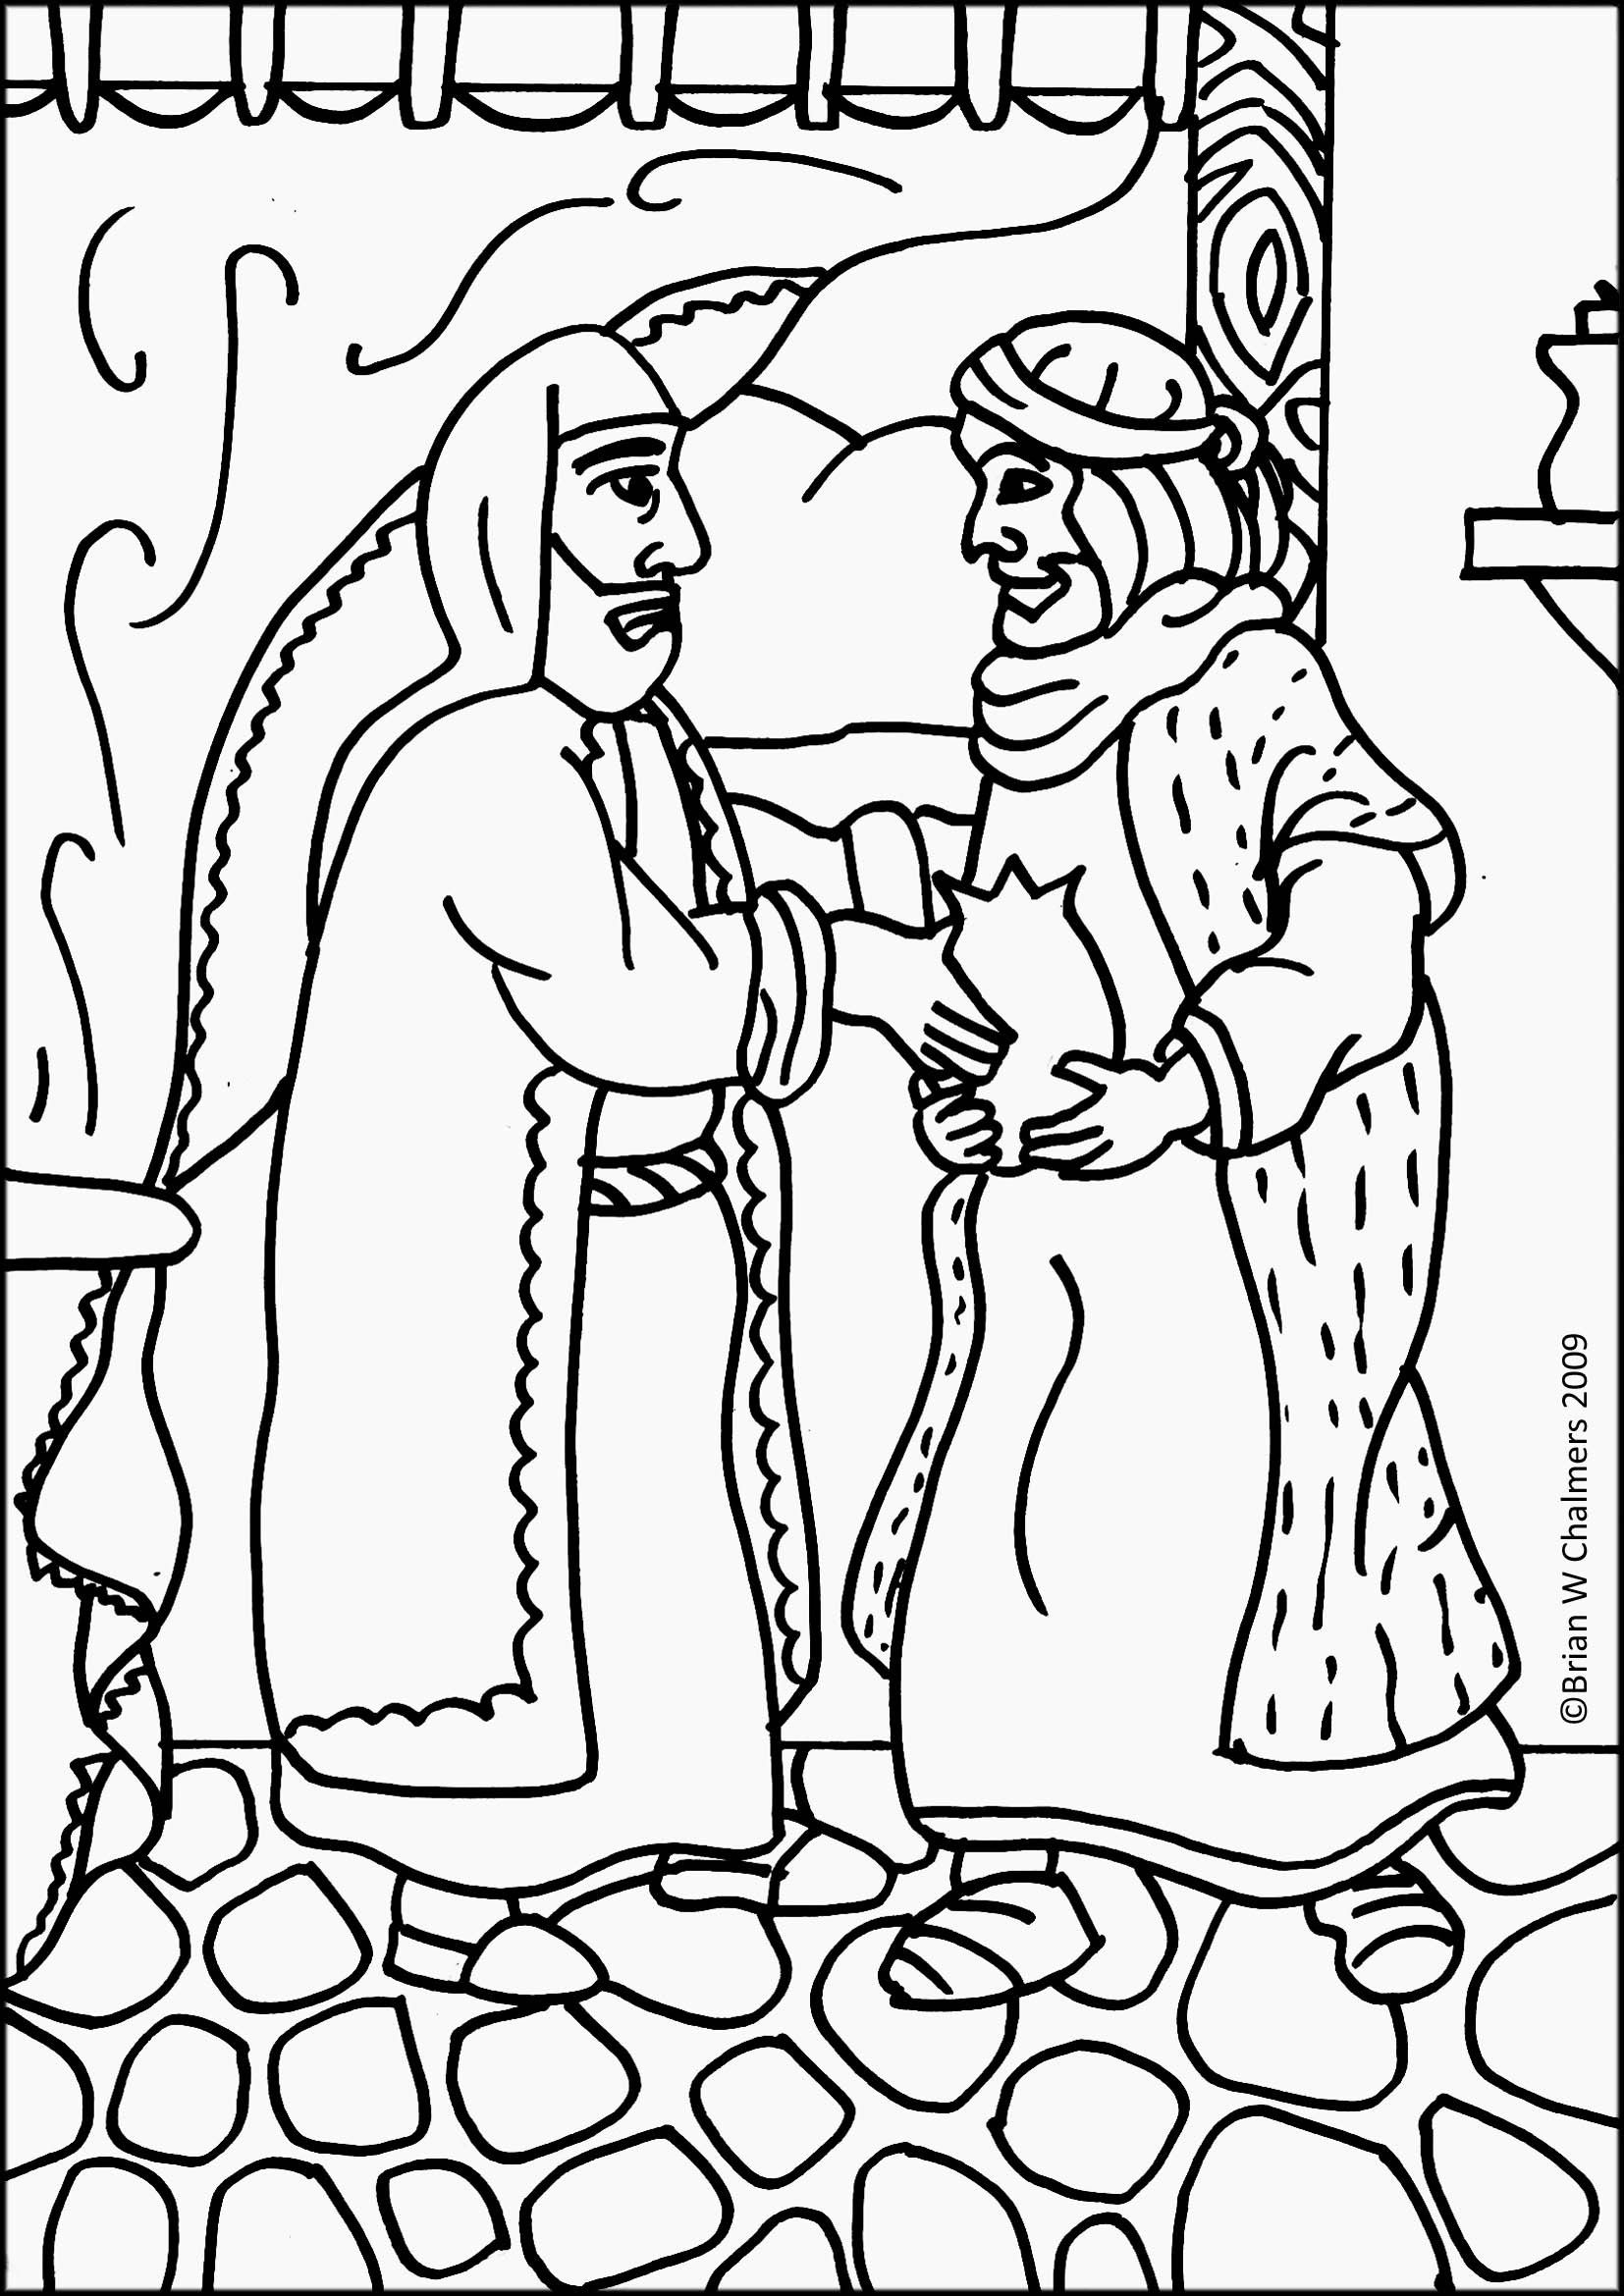 prodigal son coloring pages - photo#33